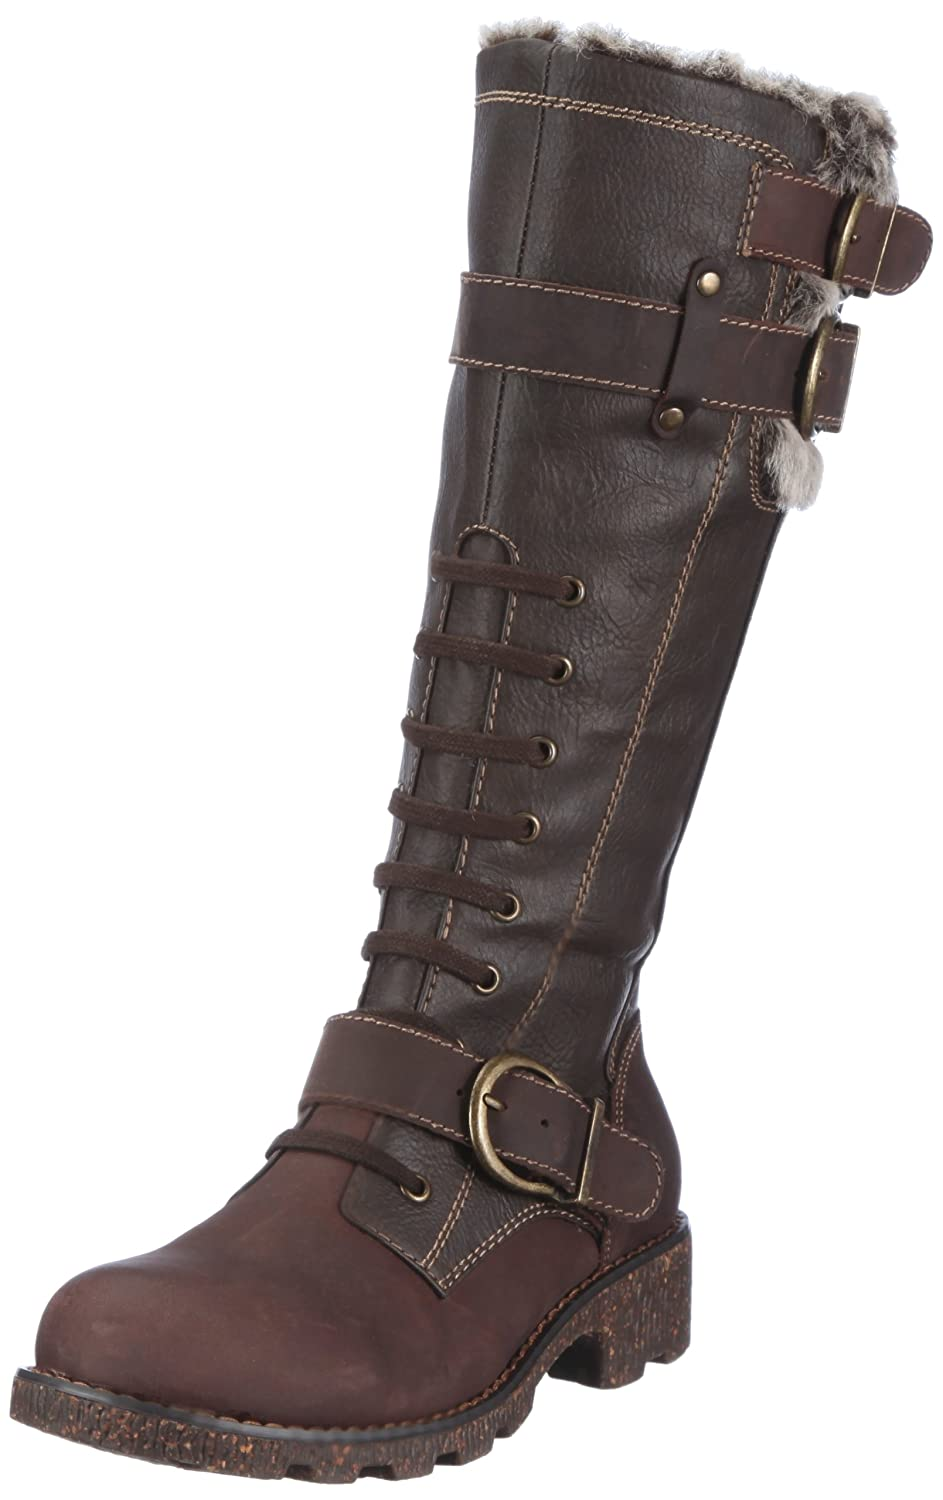 Queen ECL 1208 1953000 Damen Stiefel